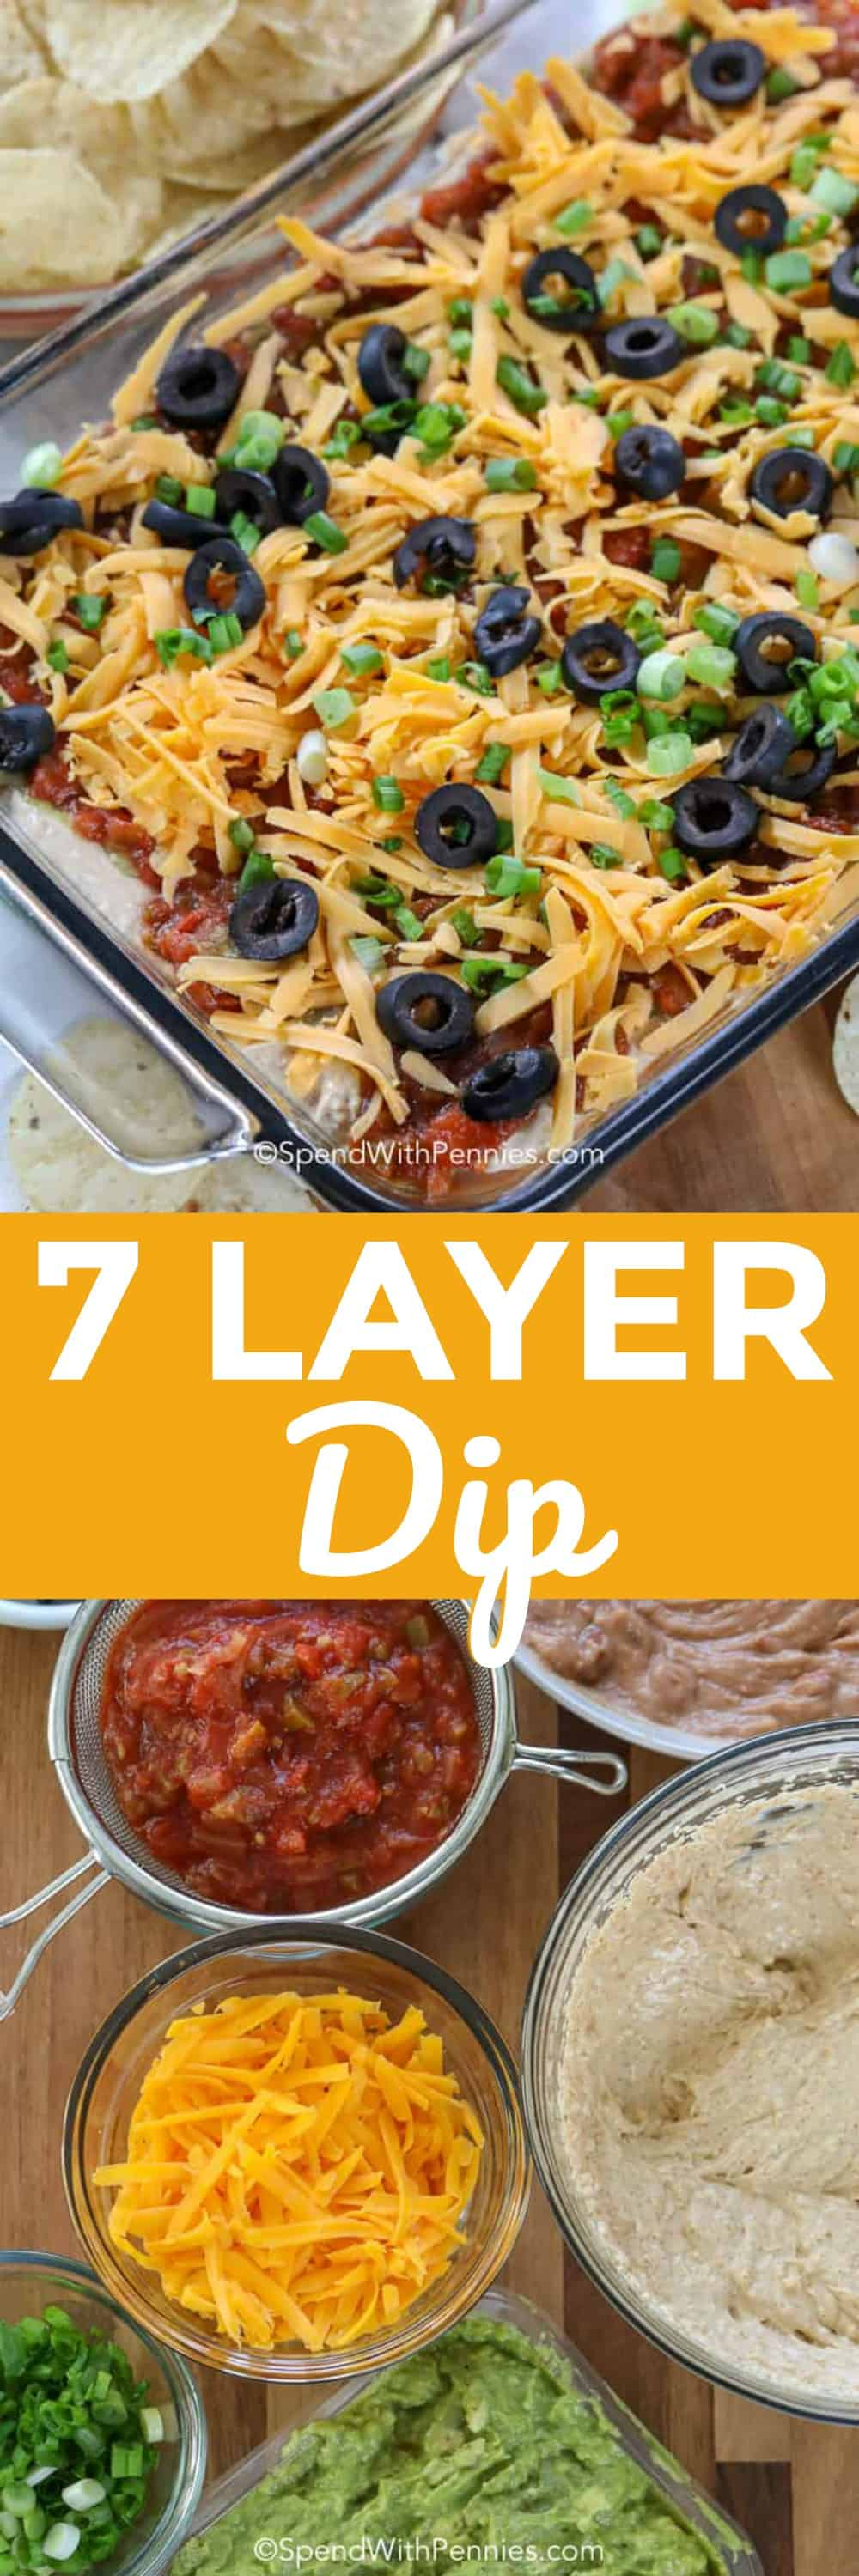 7 layer dip ingredients and 7 layer dip in a casserole dish with a title